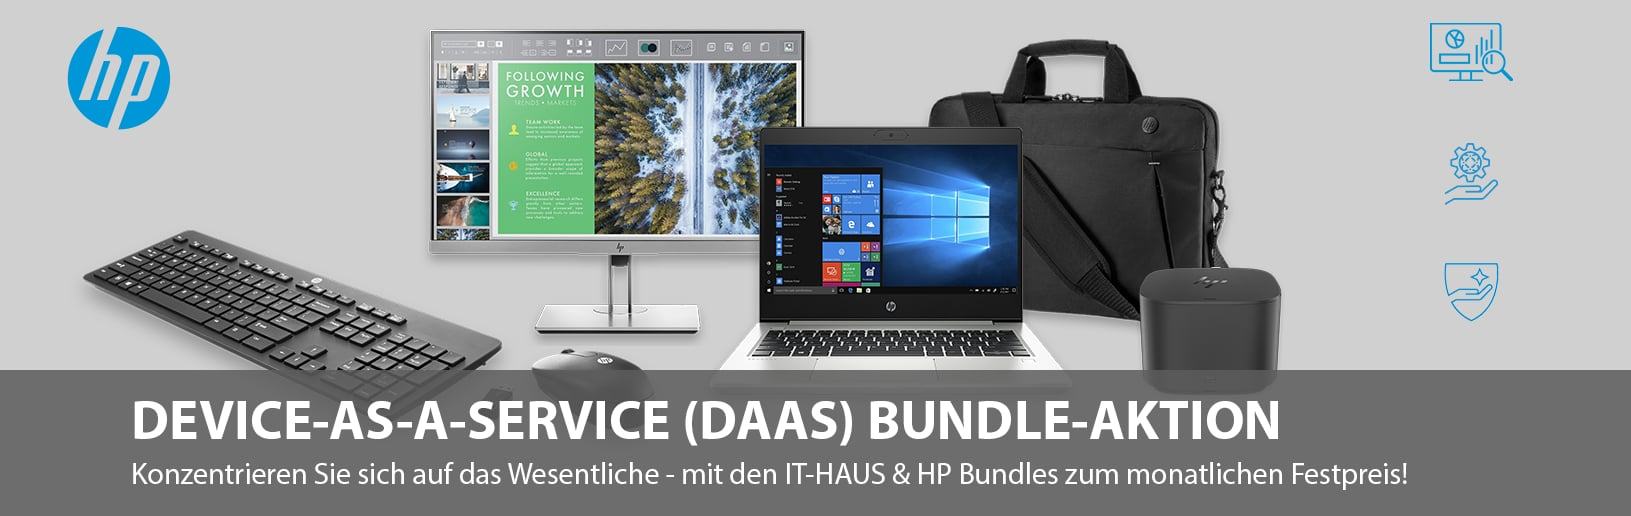 Daas - Device as a Service